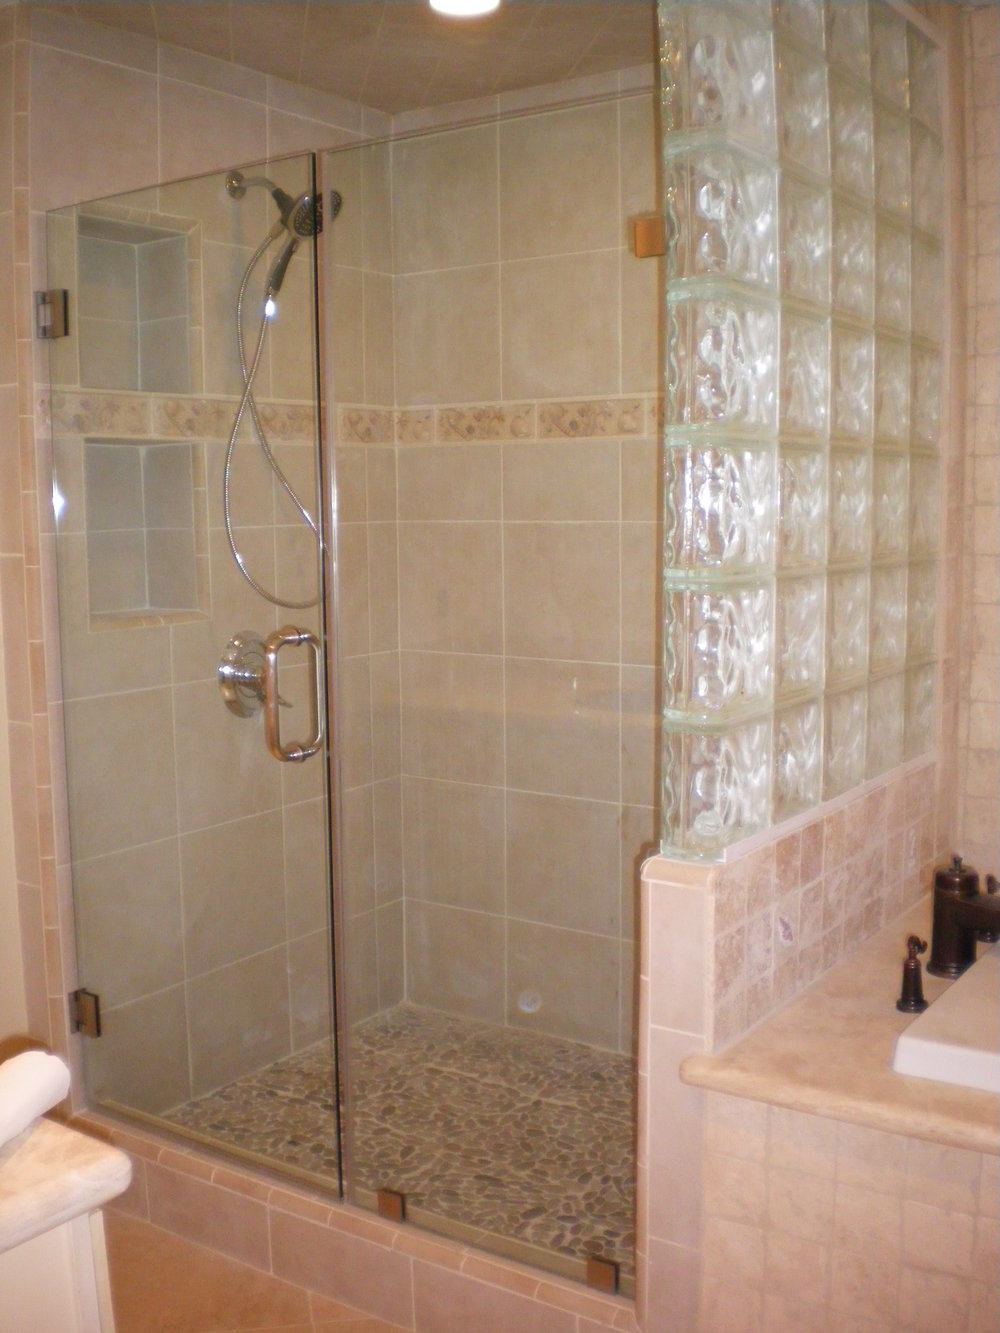 Shower-Doors-Residential-Photos-2.jpg